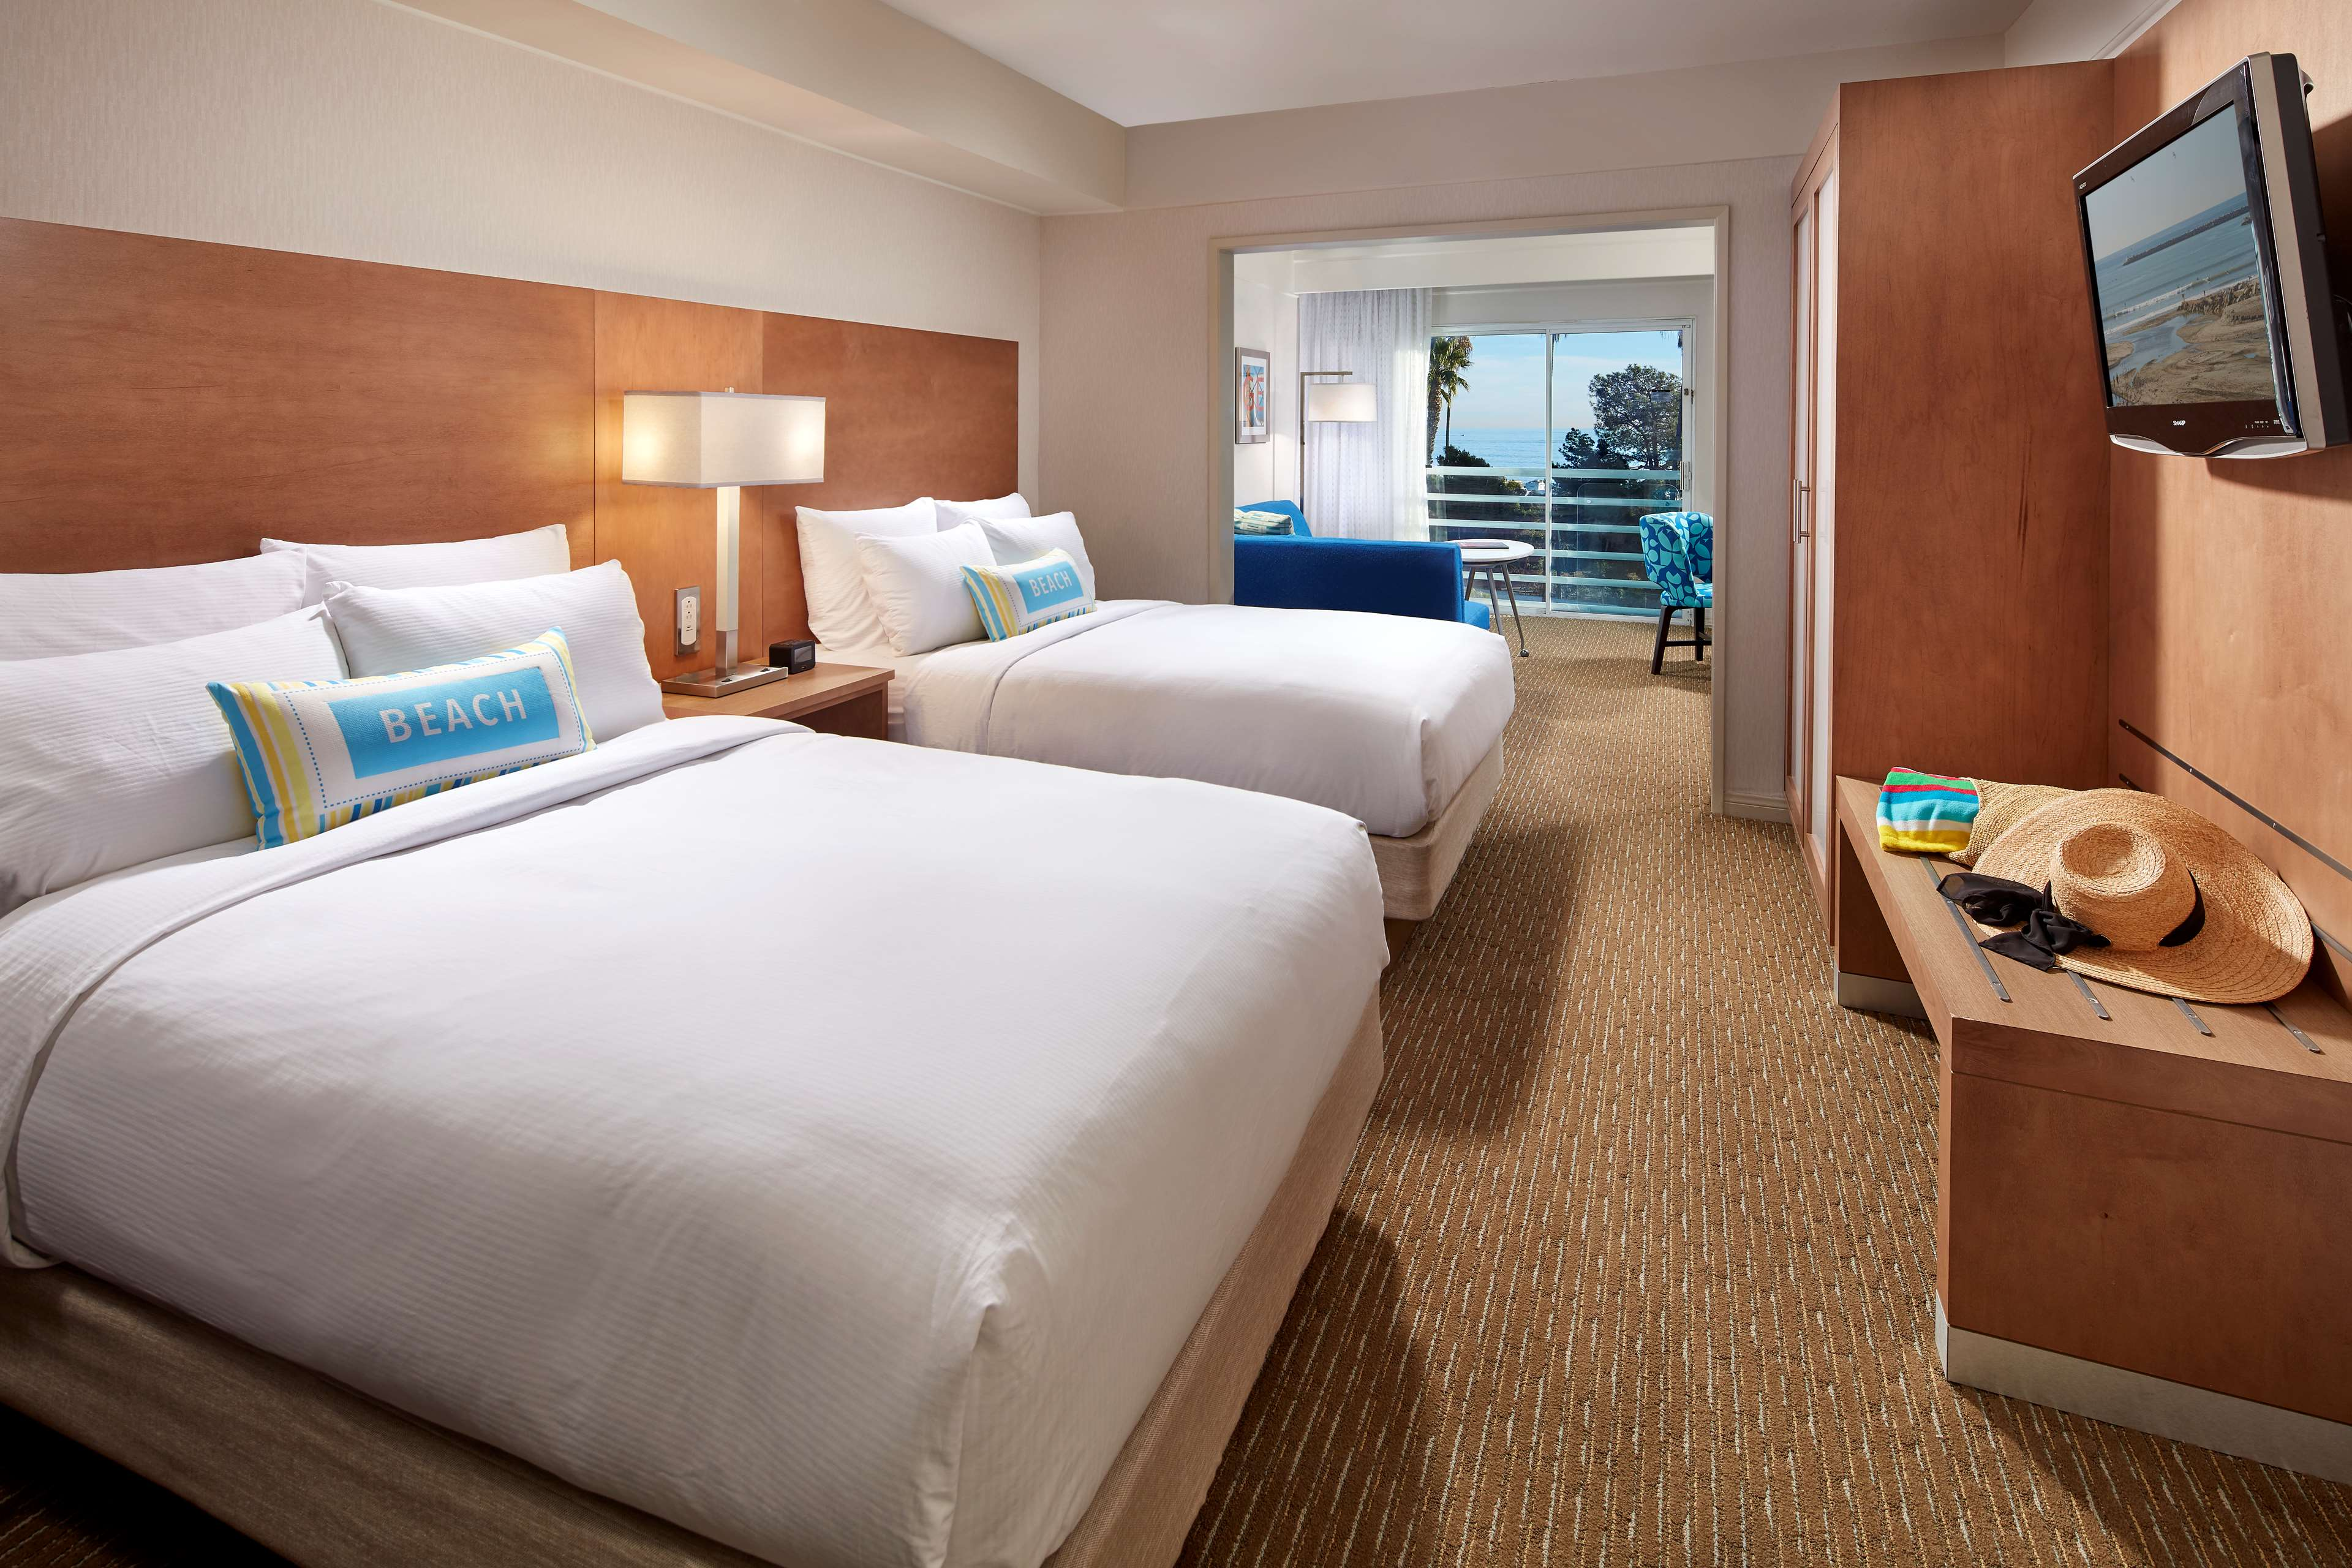 DoubleTree Suites by Hilton Hotel Doheny Beach - Dana Point image 16